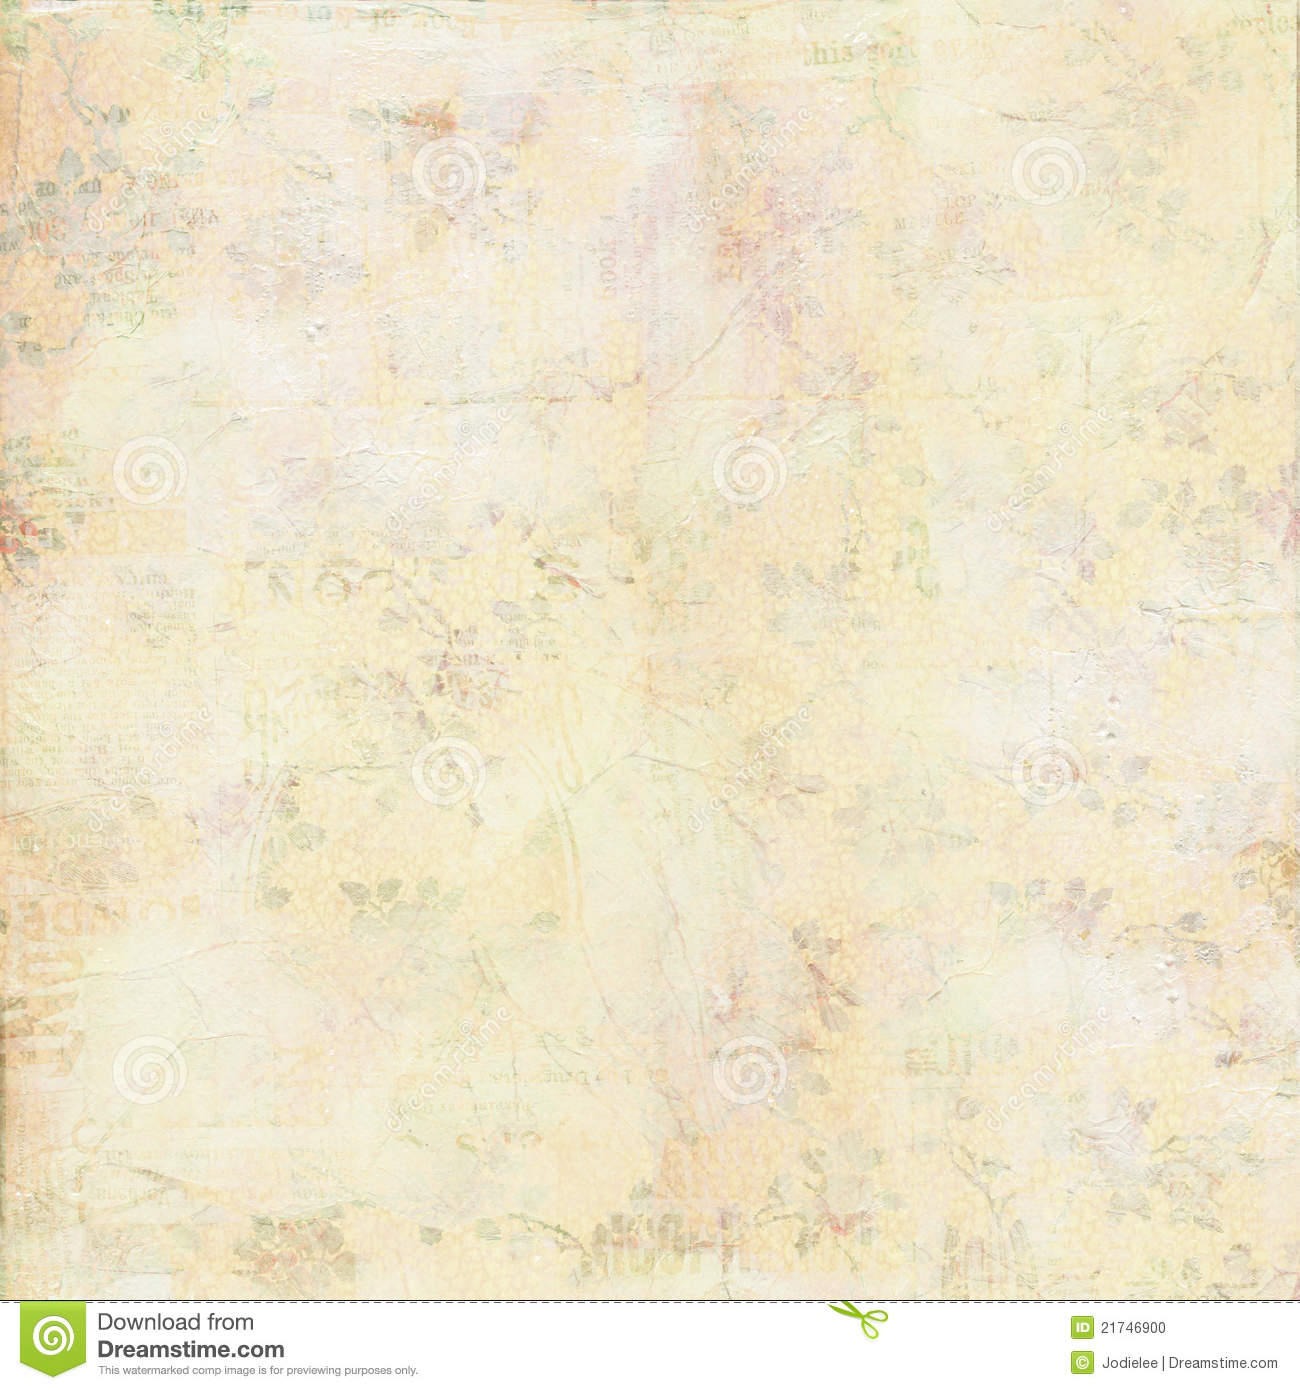 Vintage Shabby Canvas Painted Texture With Flowers Stock